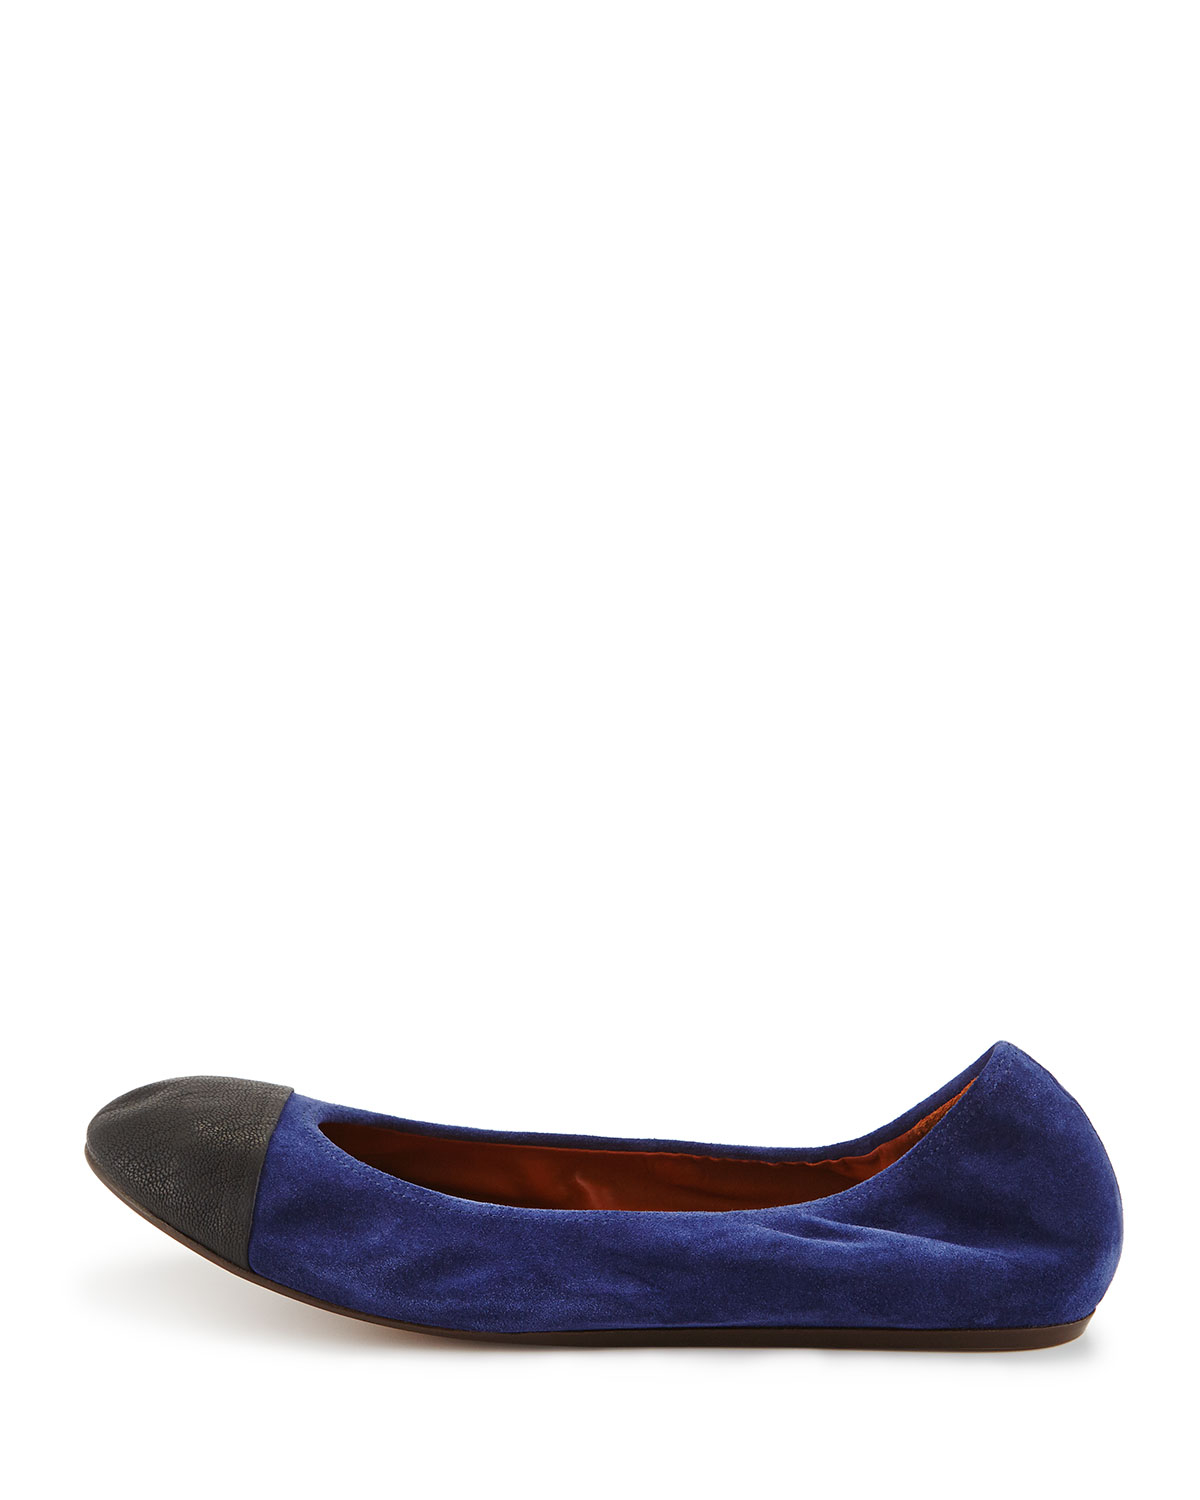 lowest price from china for sale Lanvin Suede Round-Toe Ballet Flats extremely for sale cheap best sFcsT